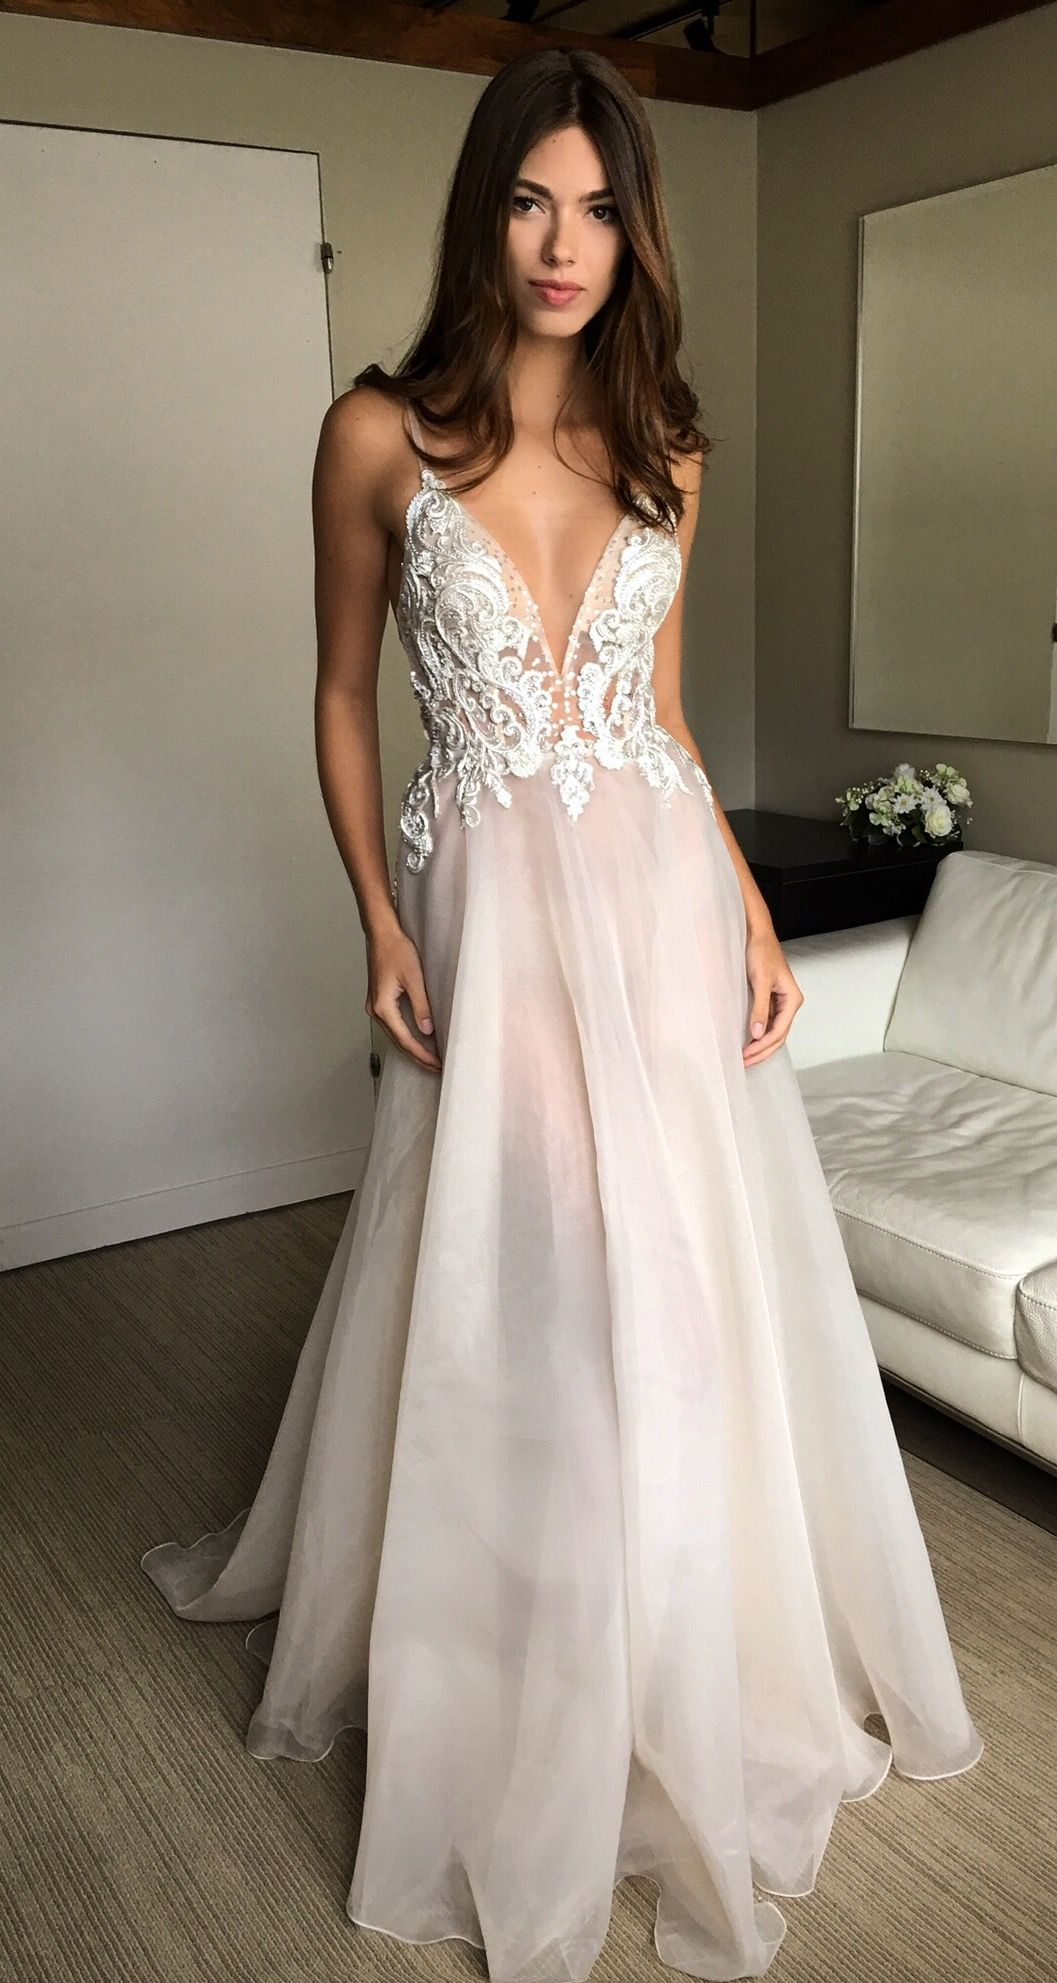 Amata from the new bridal line by berta muse wedding